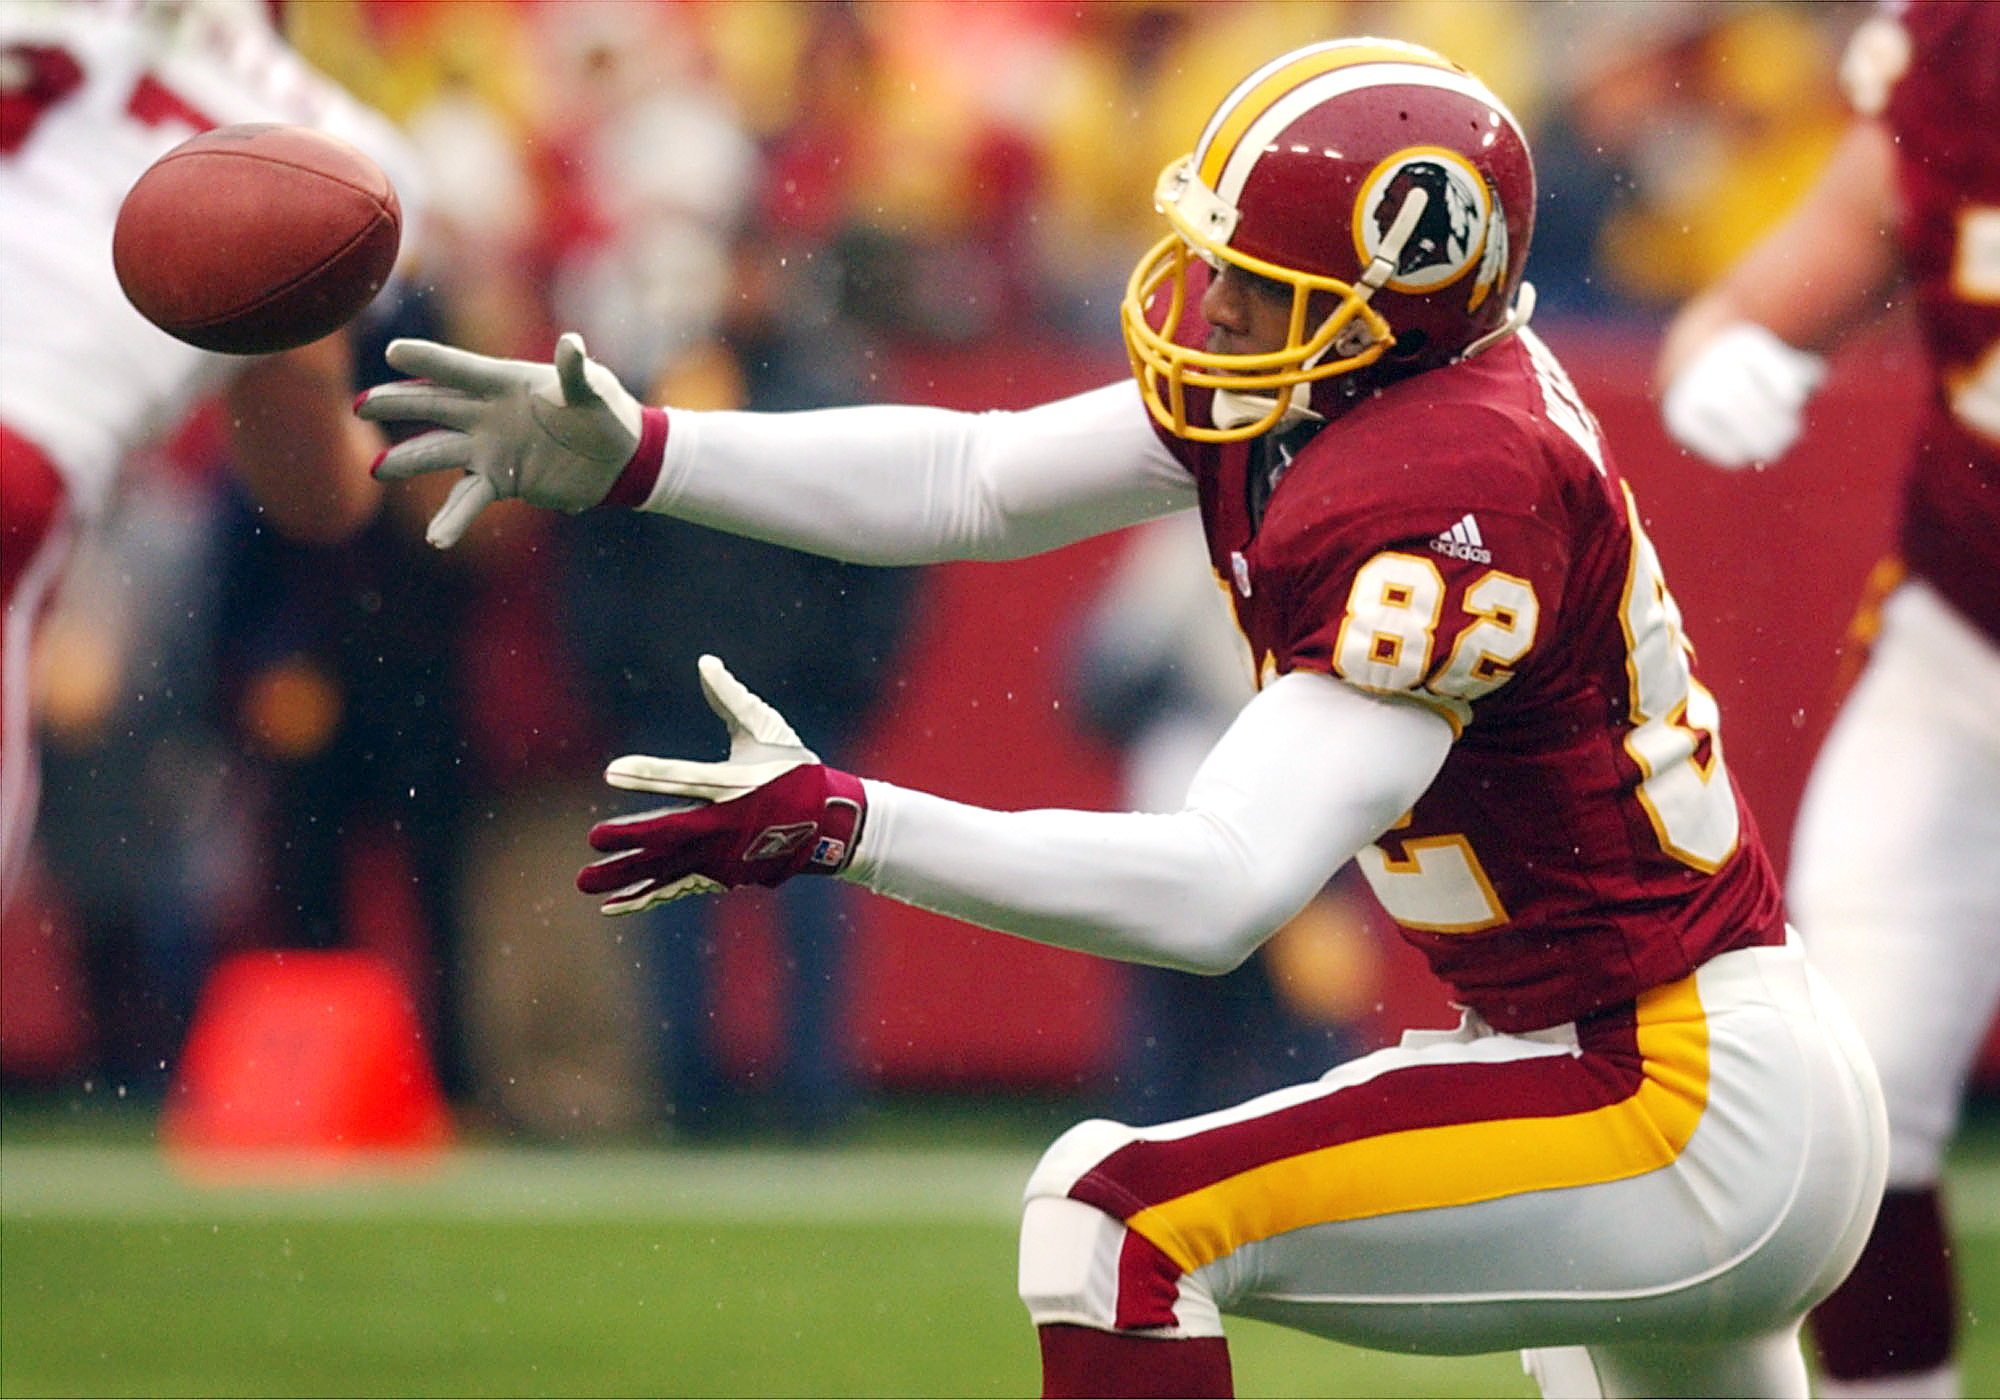 06 Jan 2002:  Michael Westbrook #82 of the Washington Redskins is unable to get a handle on a pass against the Arizona Cardinals during week 17 NFL action at FedEx Field in Landover, Maryland. DIGITAL IMAGE. Mandatory Credit: Doug Pensinger/Getty Images